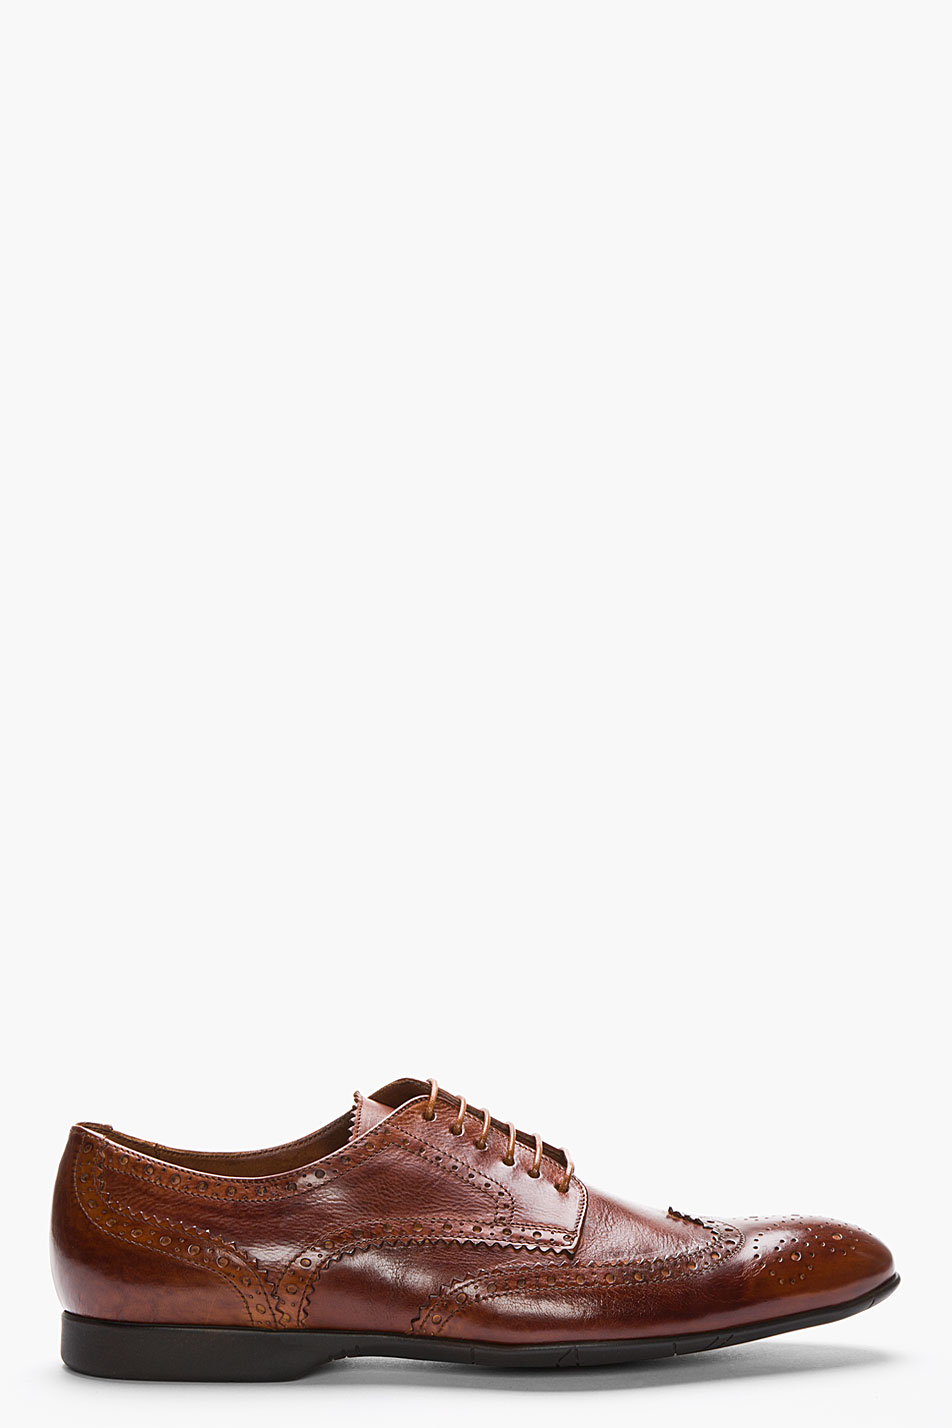 Ps by paul smith tan leather milton dip dyed wingtip brogues